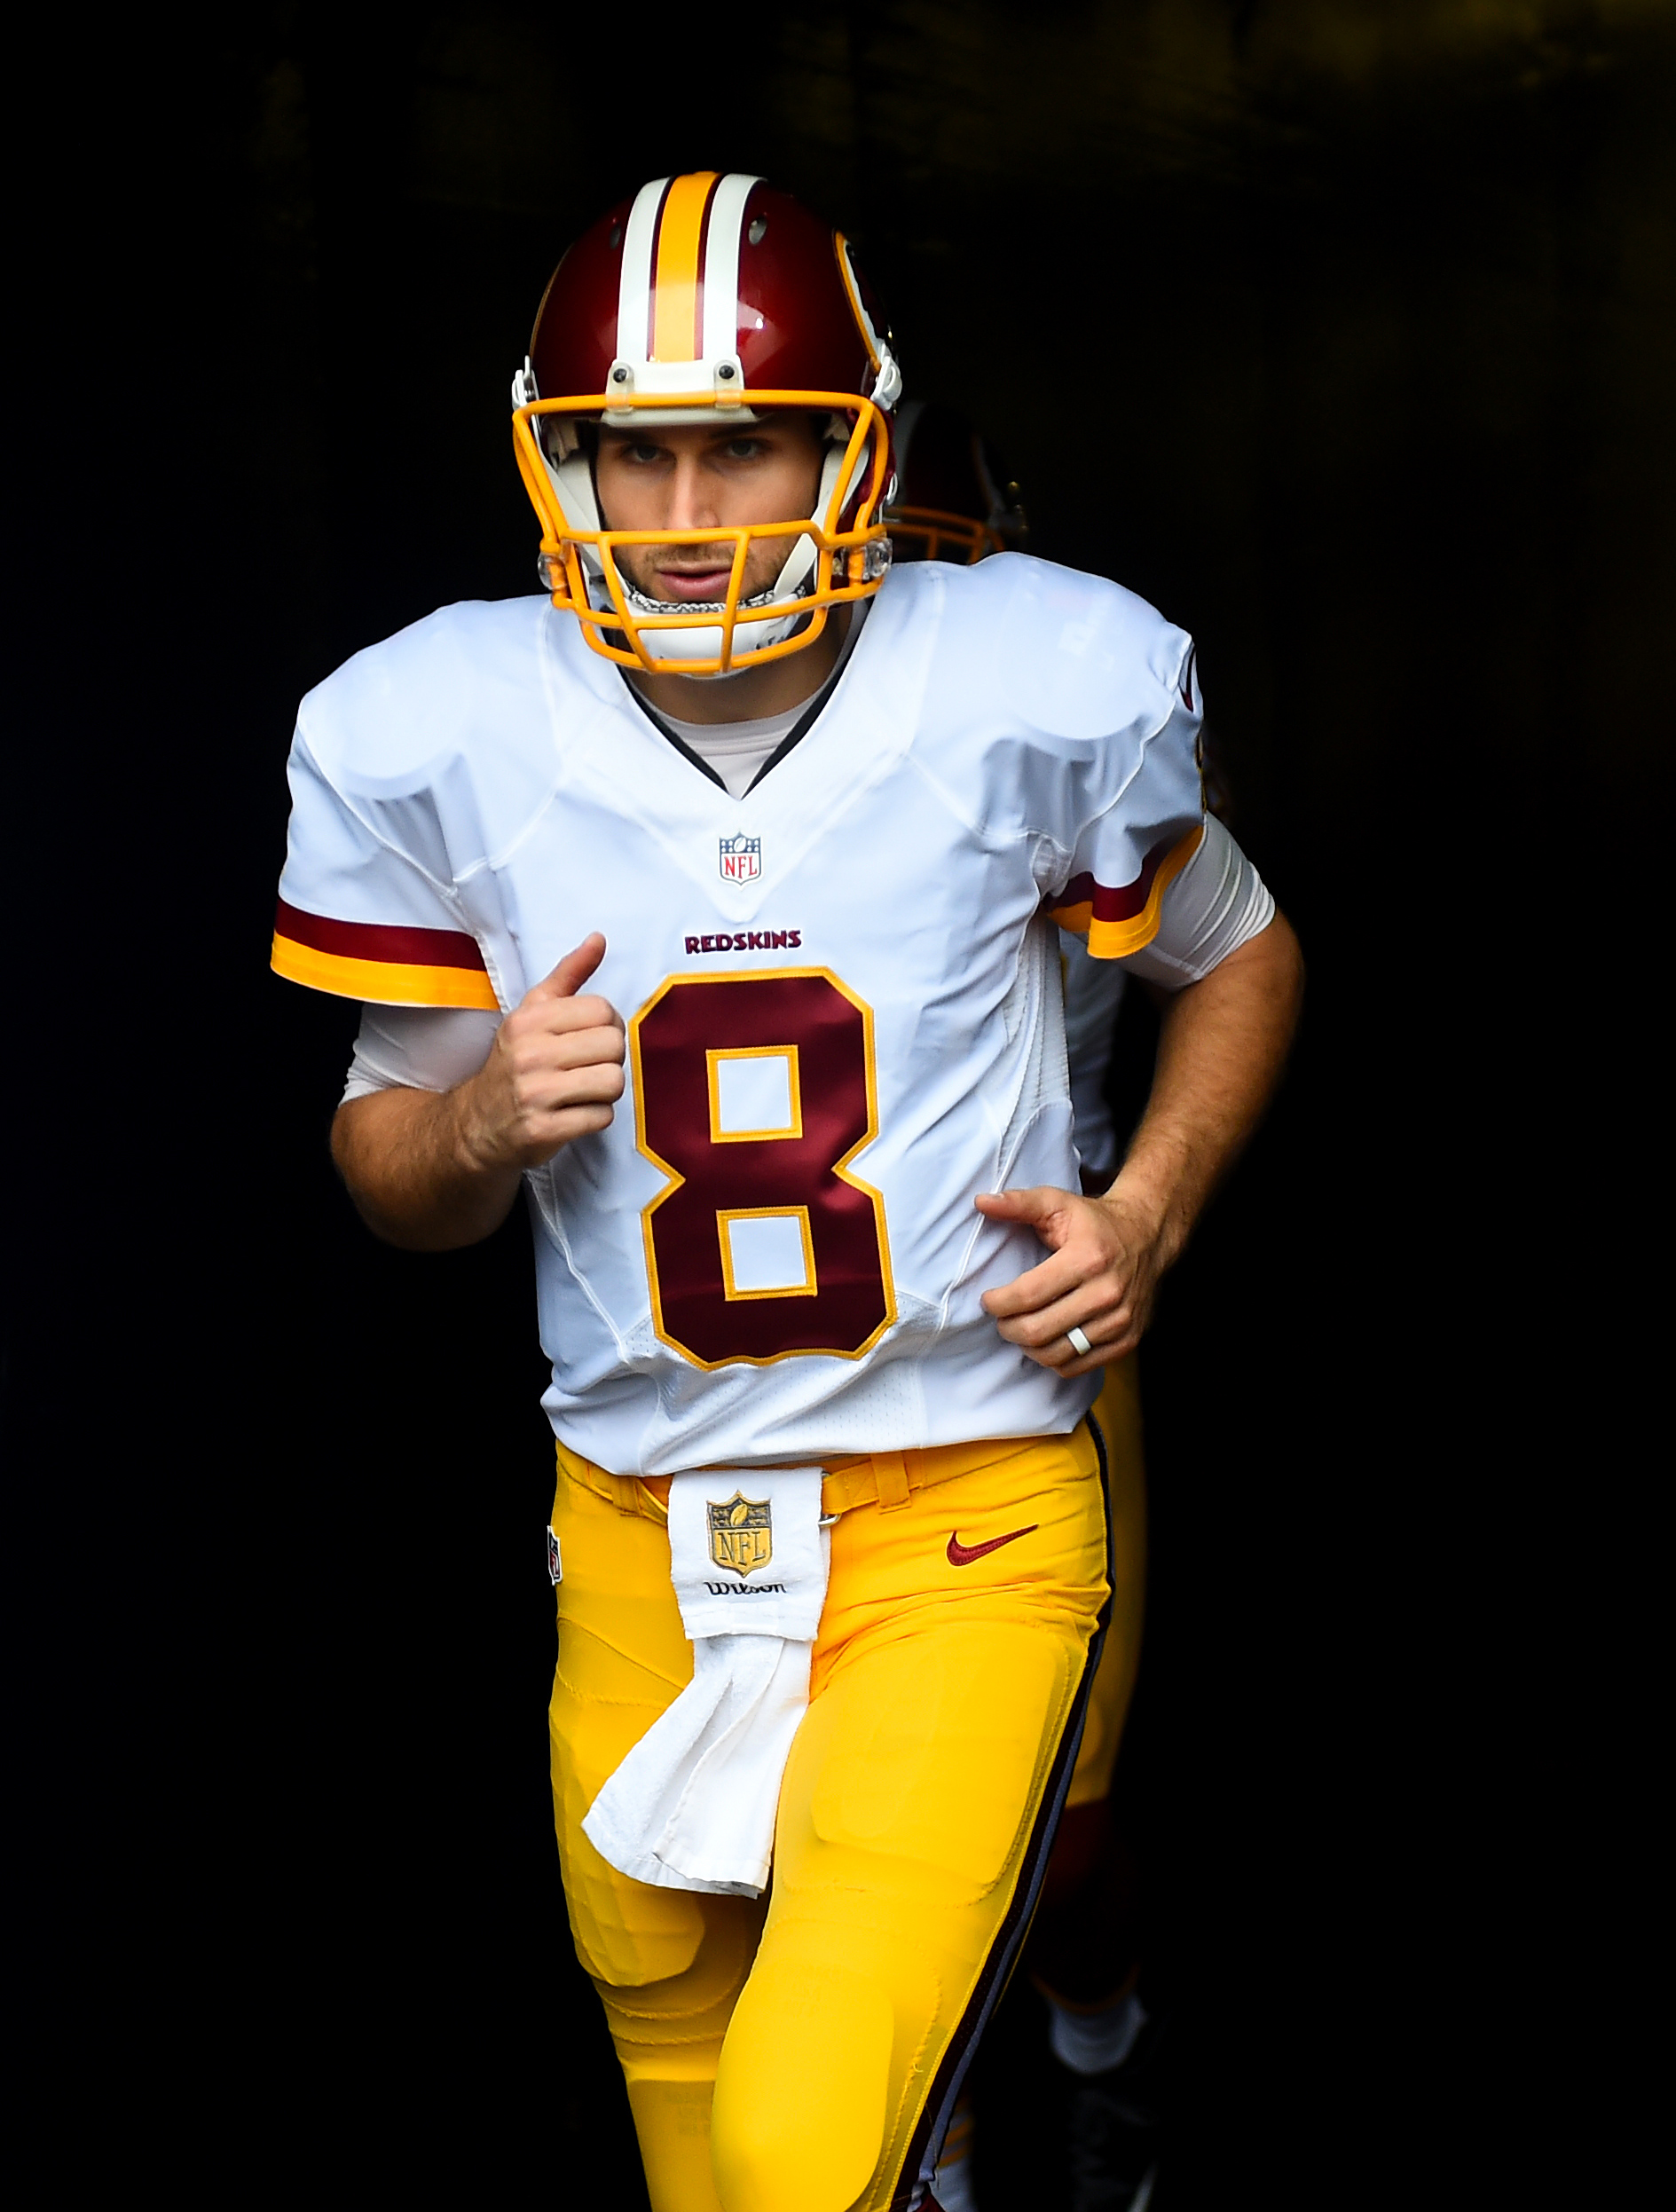 Nf Nfl Free Agents 2016 Rankings - Kirk cousins vertical